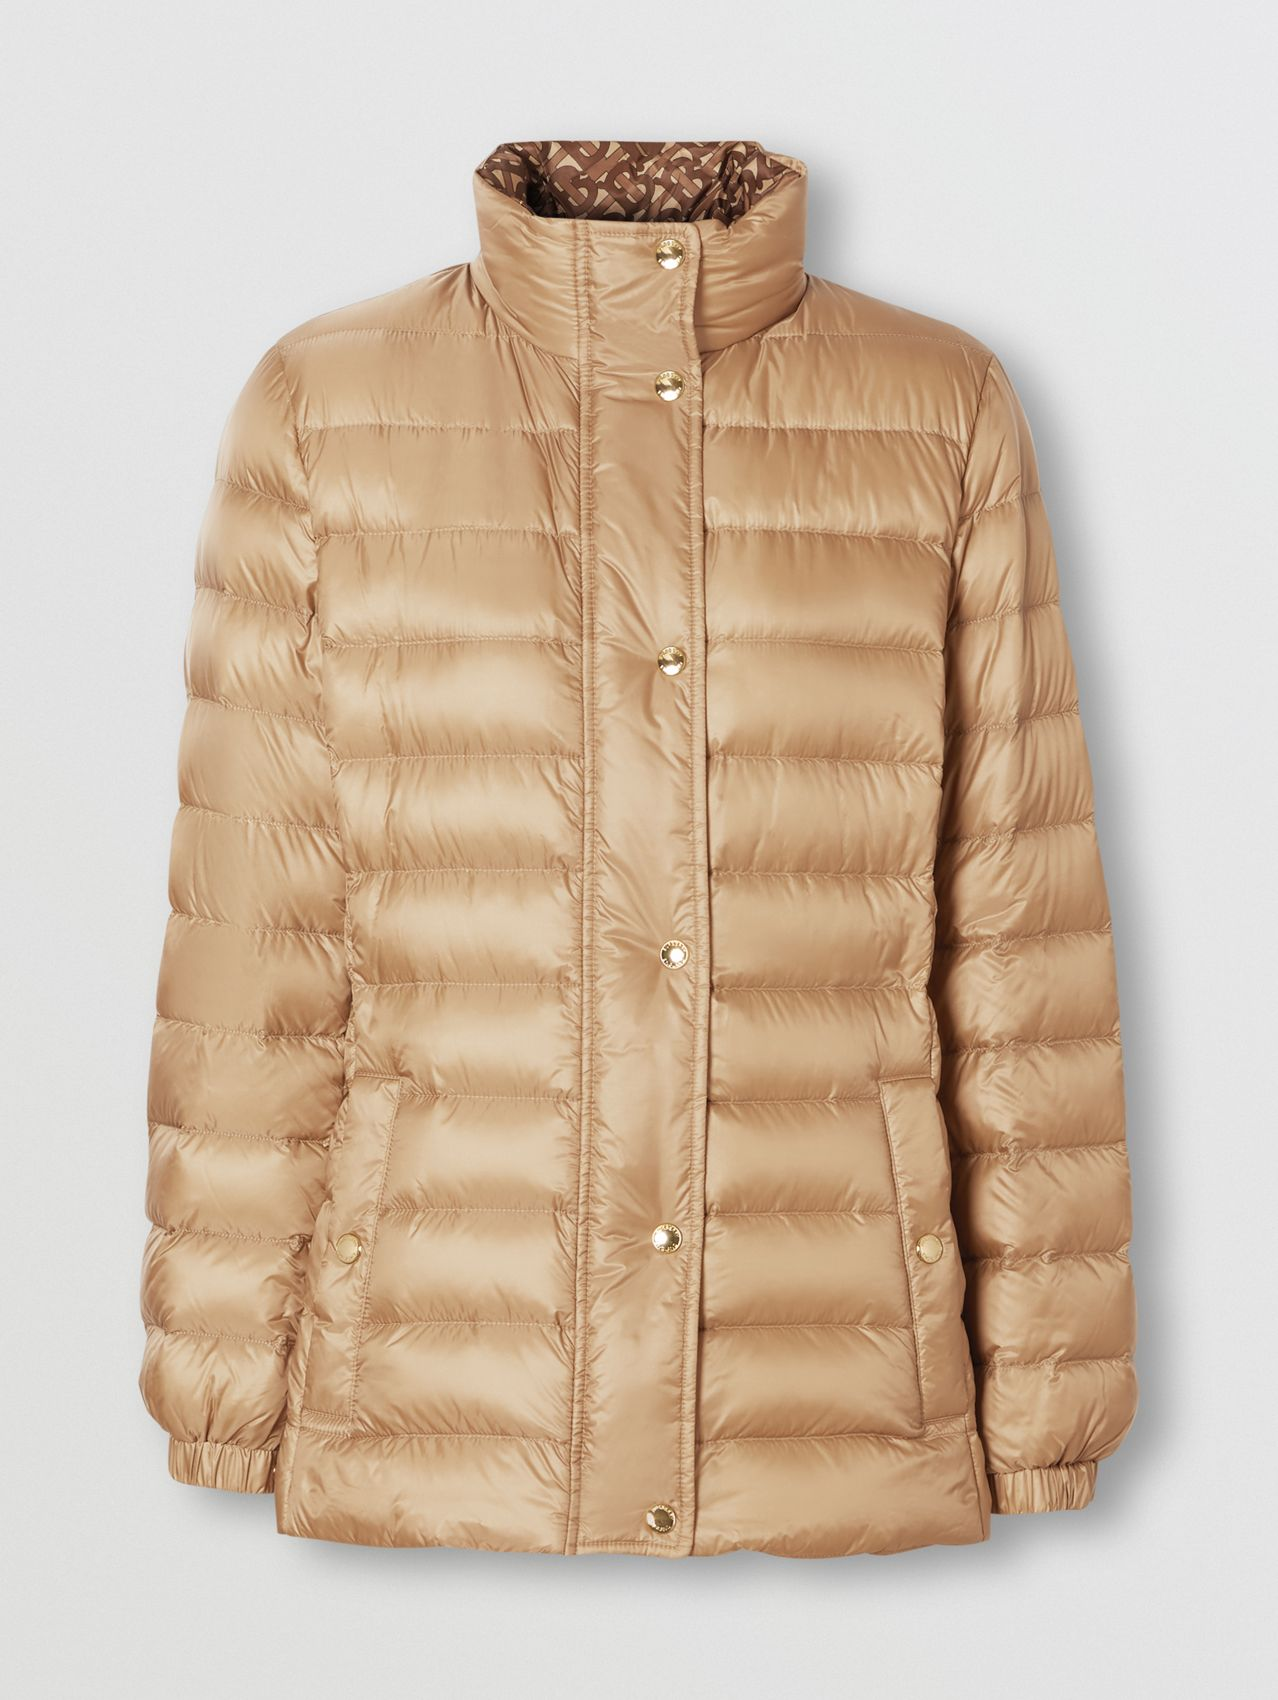 Monogram Print-lined Lightweight Puffer Jacket